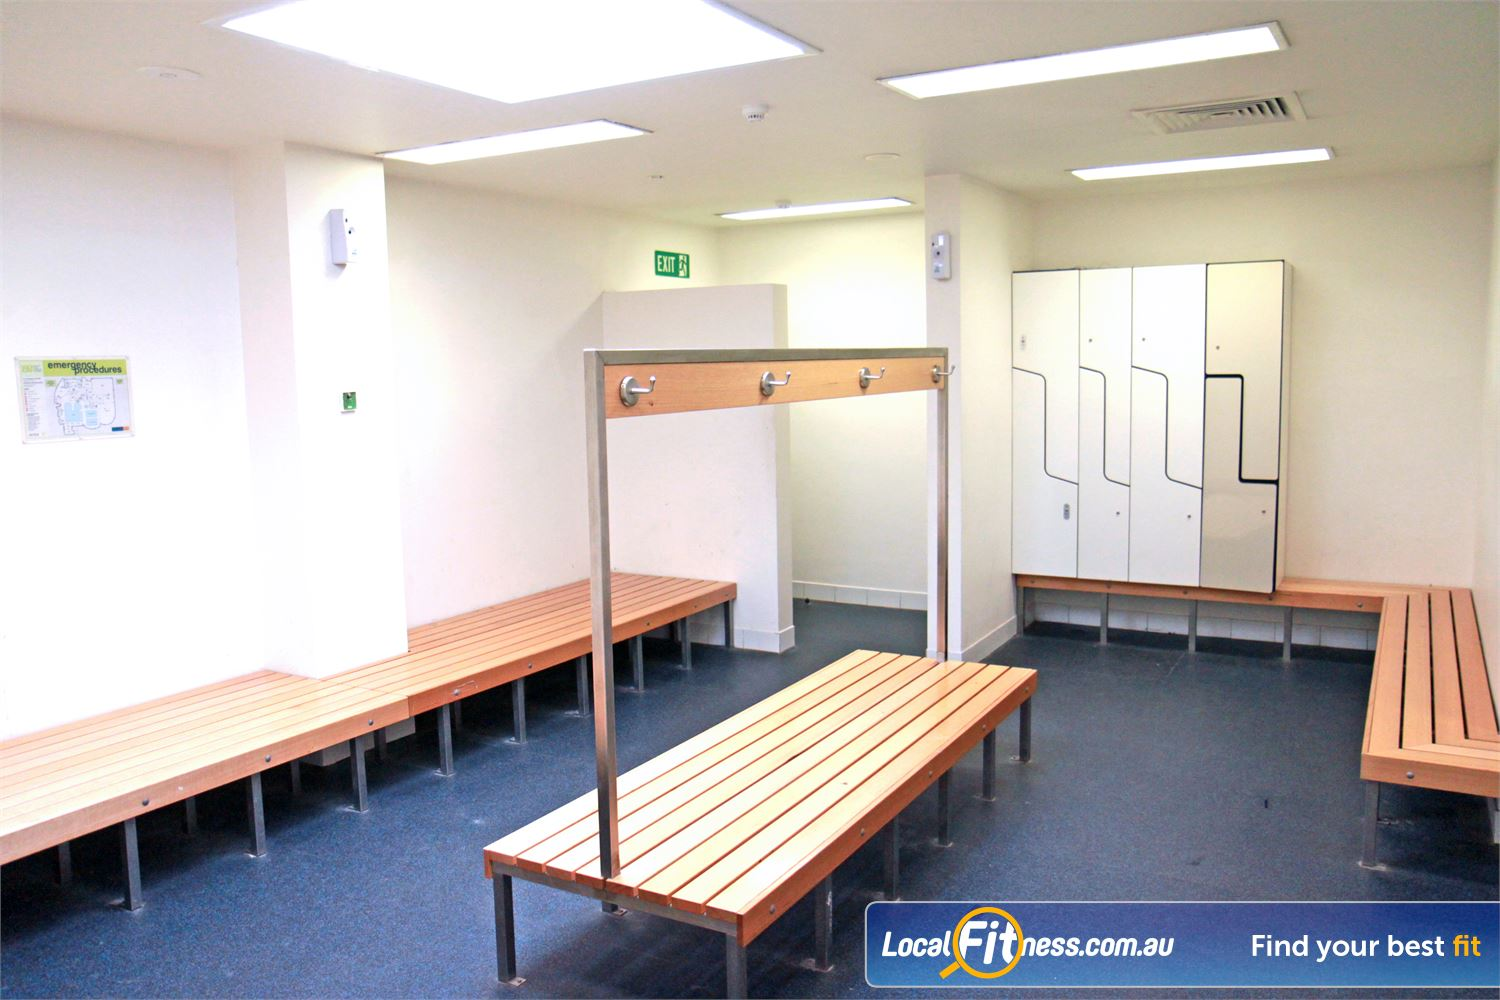 Ascot Vale Leisure Centre Ascot Vale The spacious members access change room facilities.